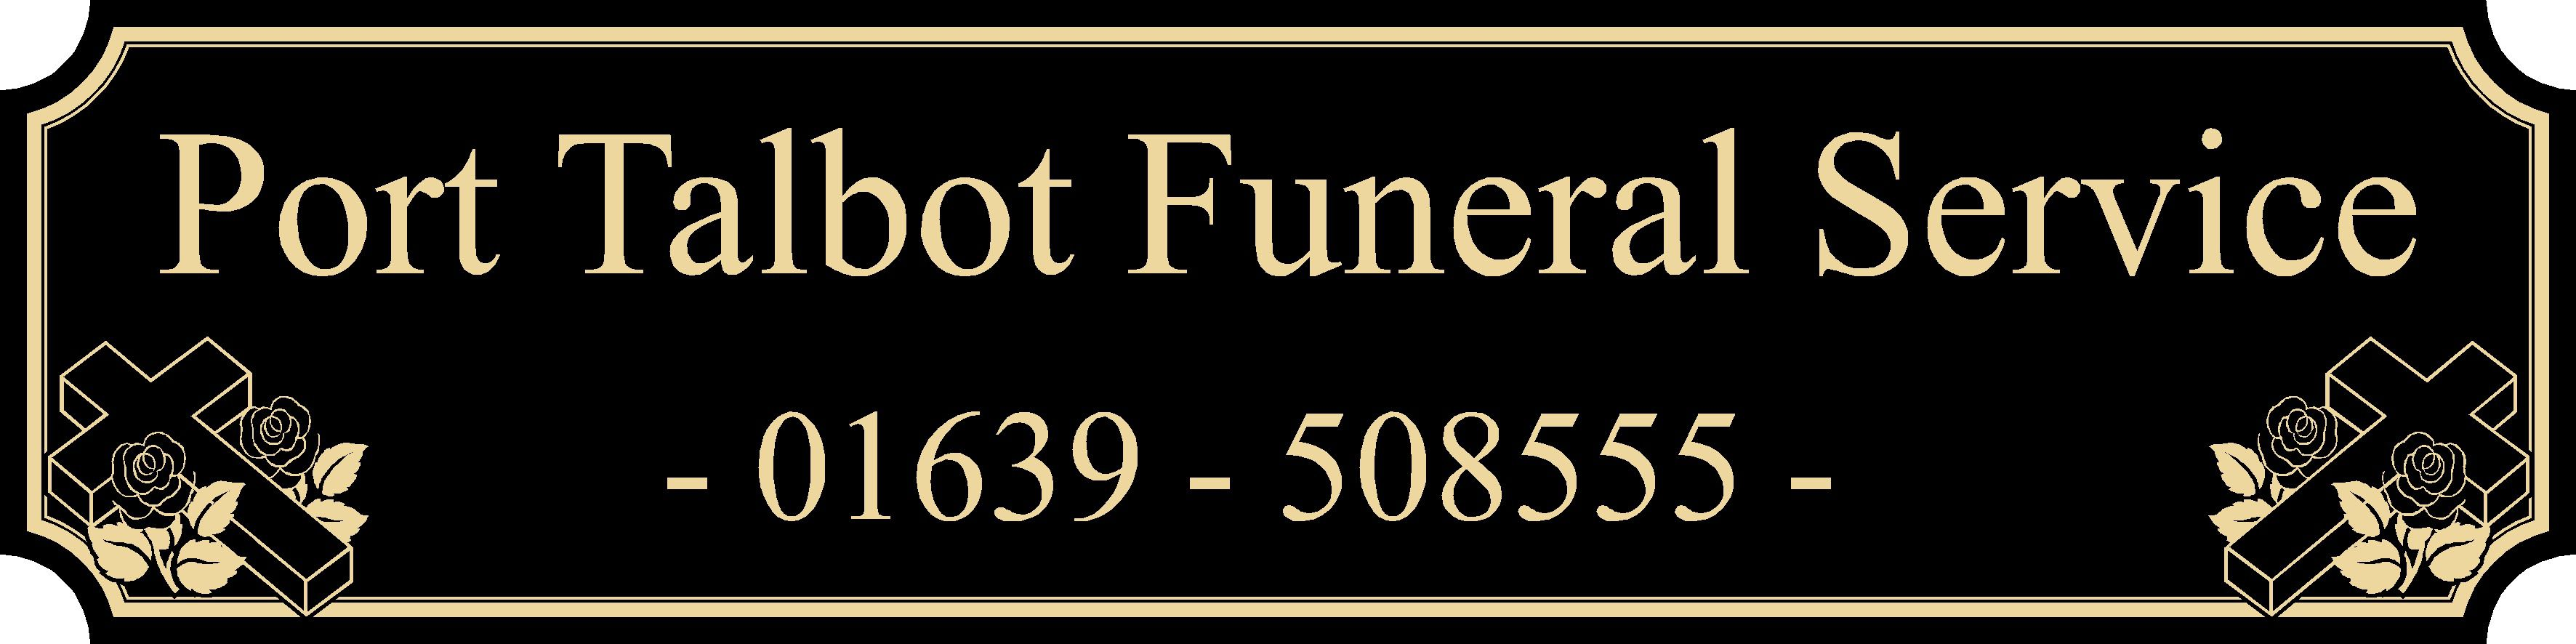 Port Talbot Funeral Service